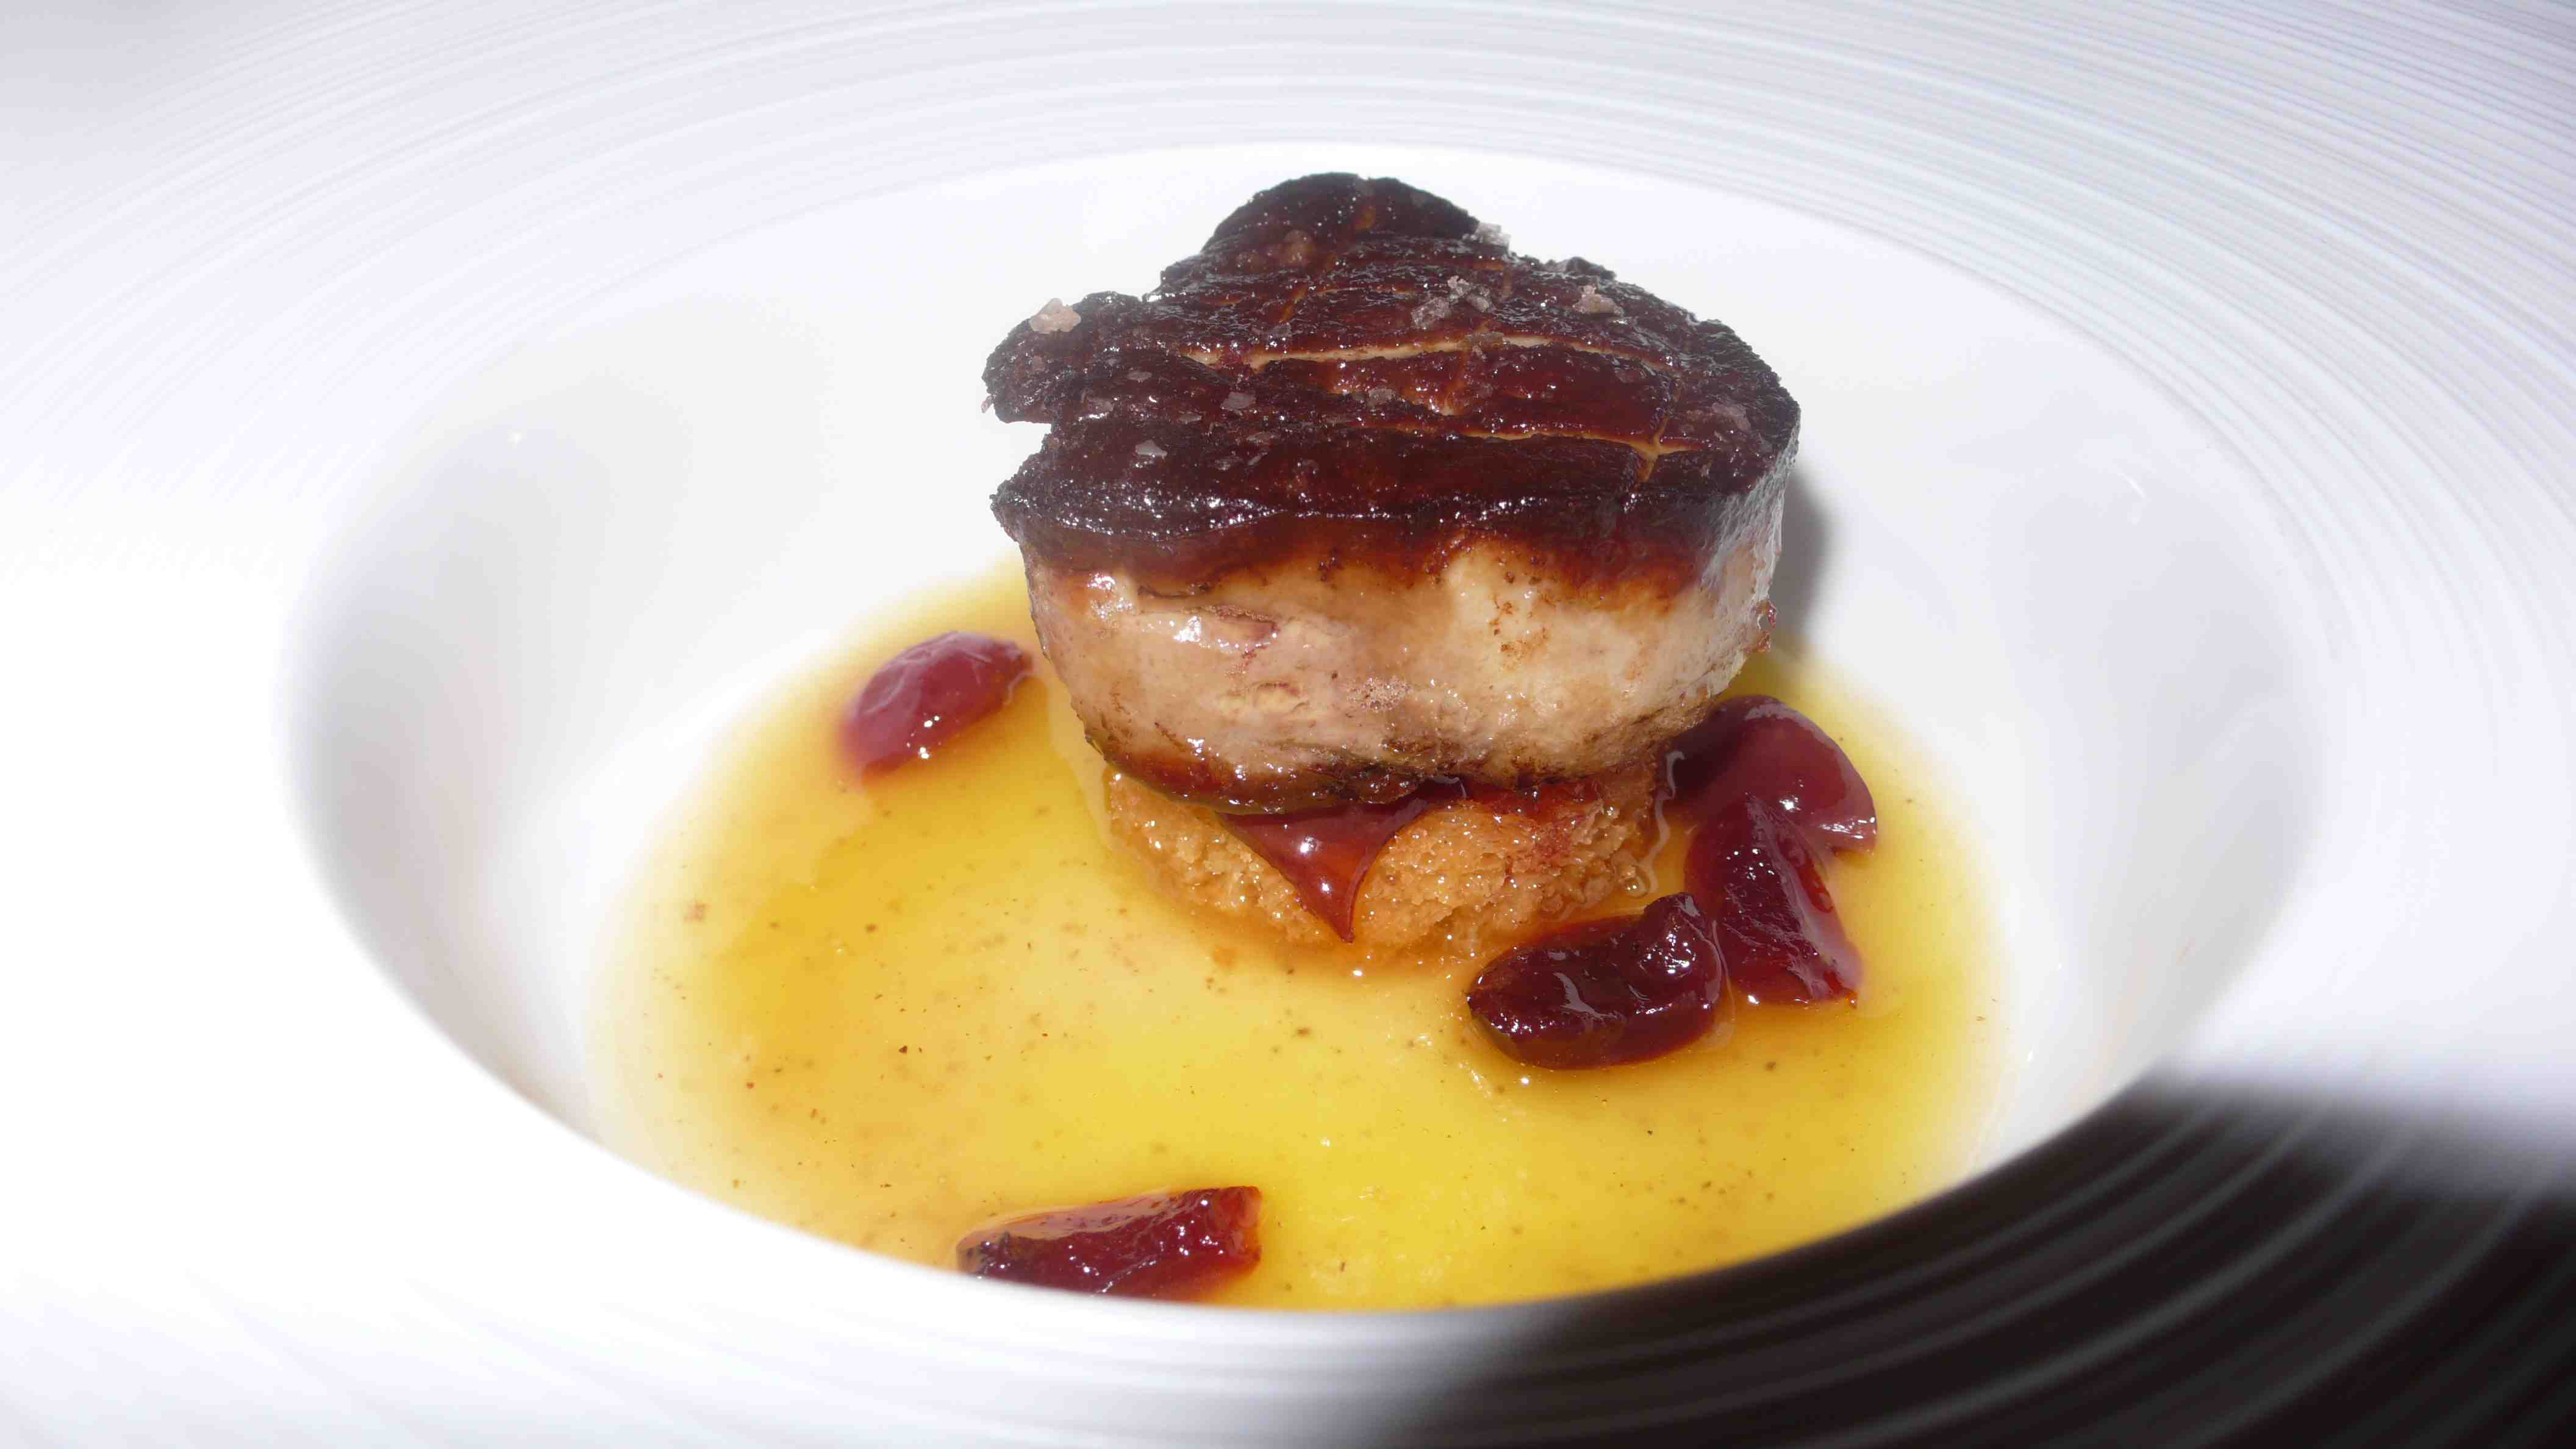 Hot Foie gras with spicy cherry compote